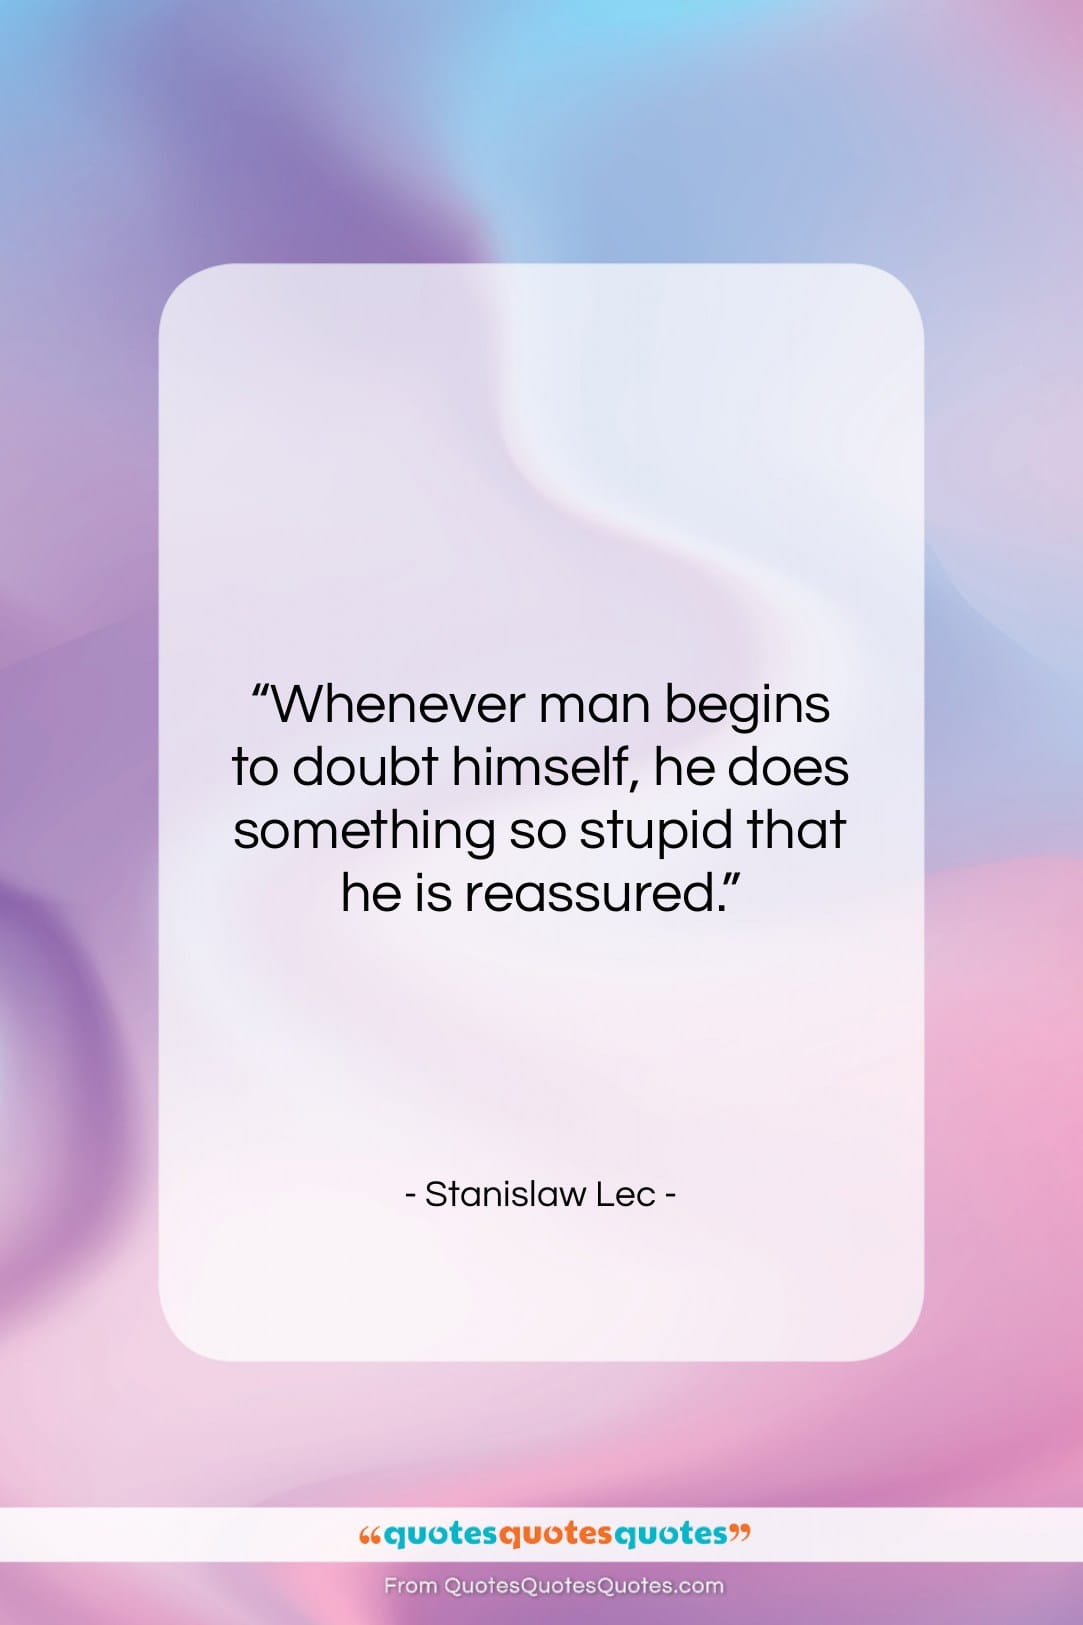 """Stanislaw Lec quote: """"Whenever man begins to doubt himself, he…""""- at QuotesQuotesQuotes.com"""